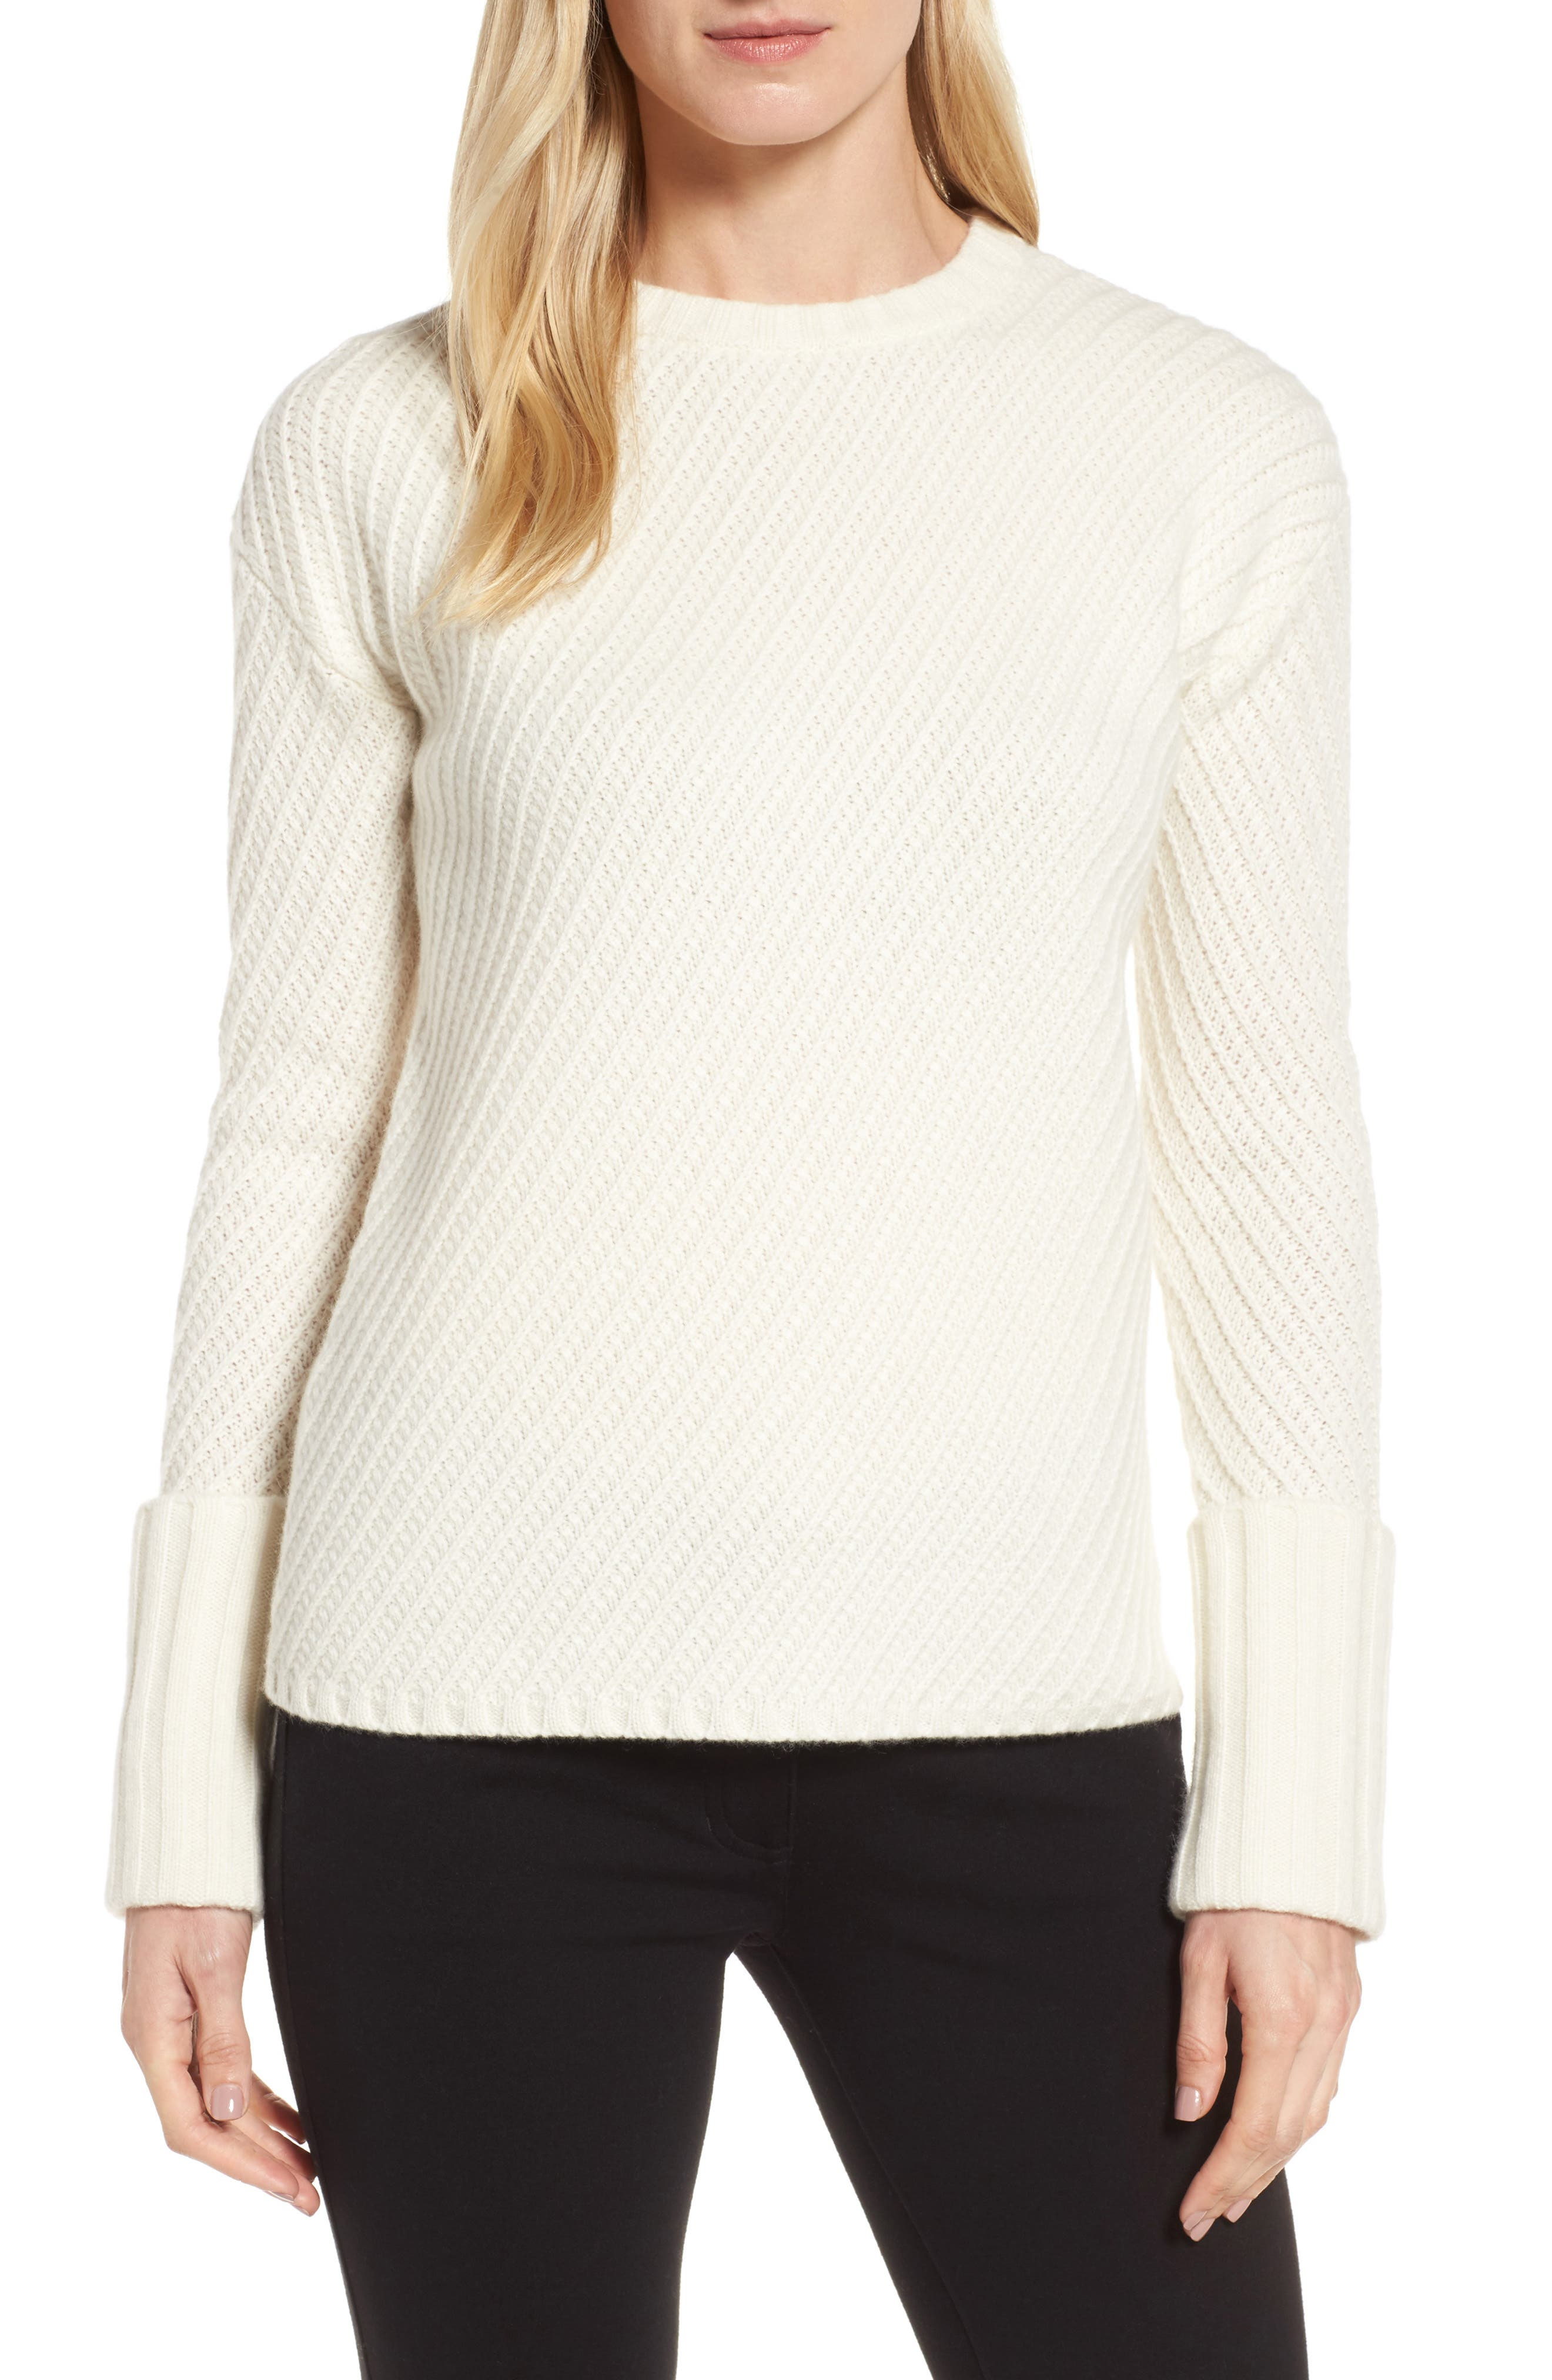 Textured Cashmere Sweater,                             Main thumbnail 1, color,                             Ivory Soft